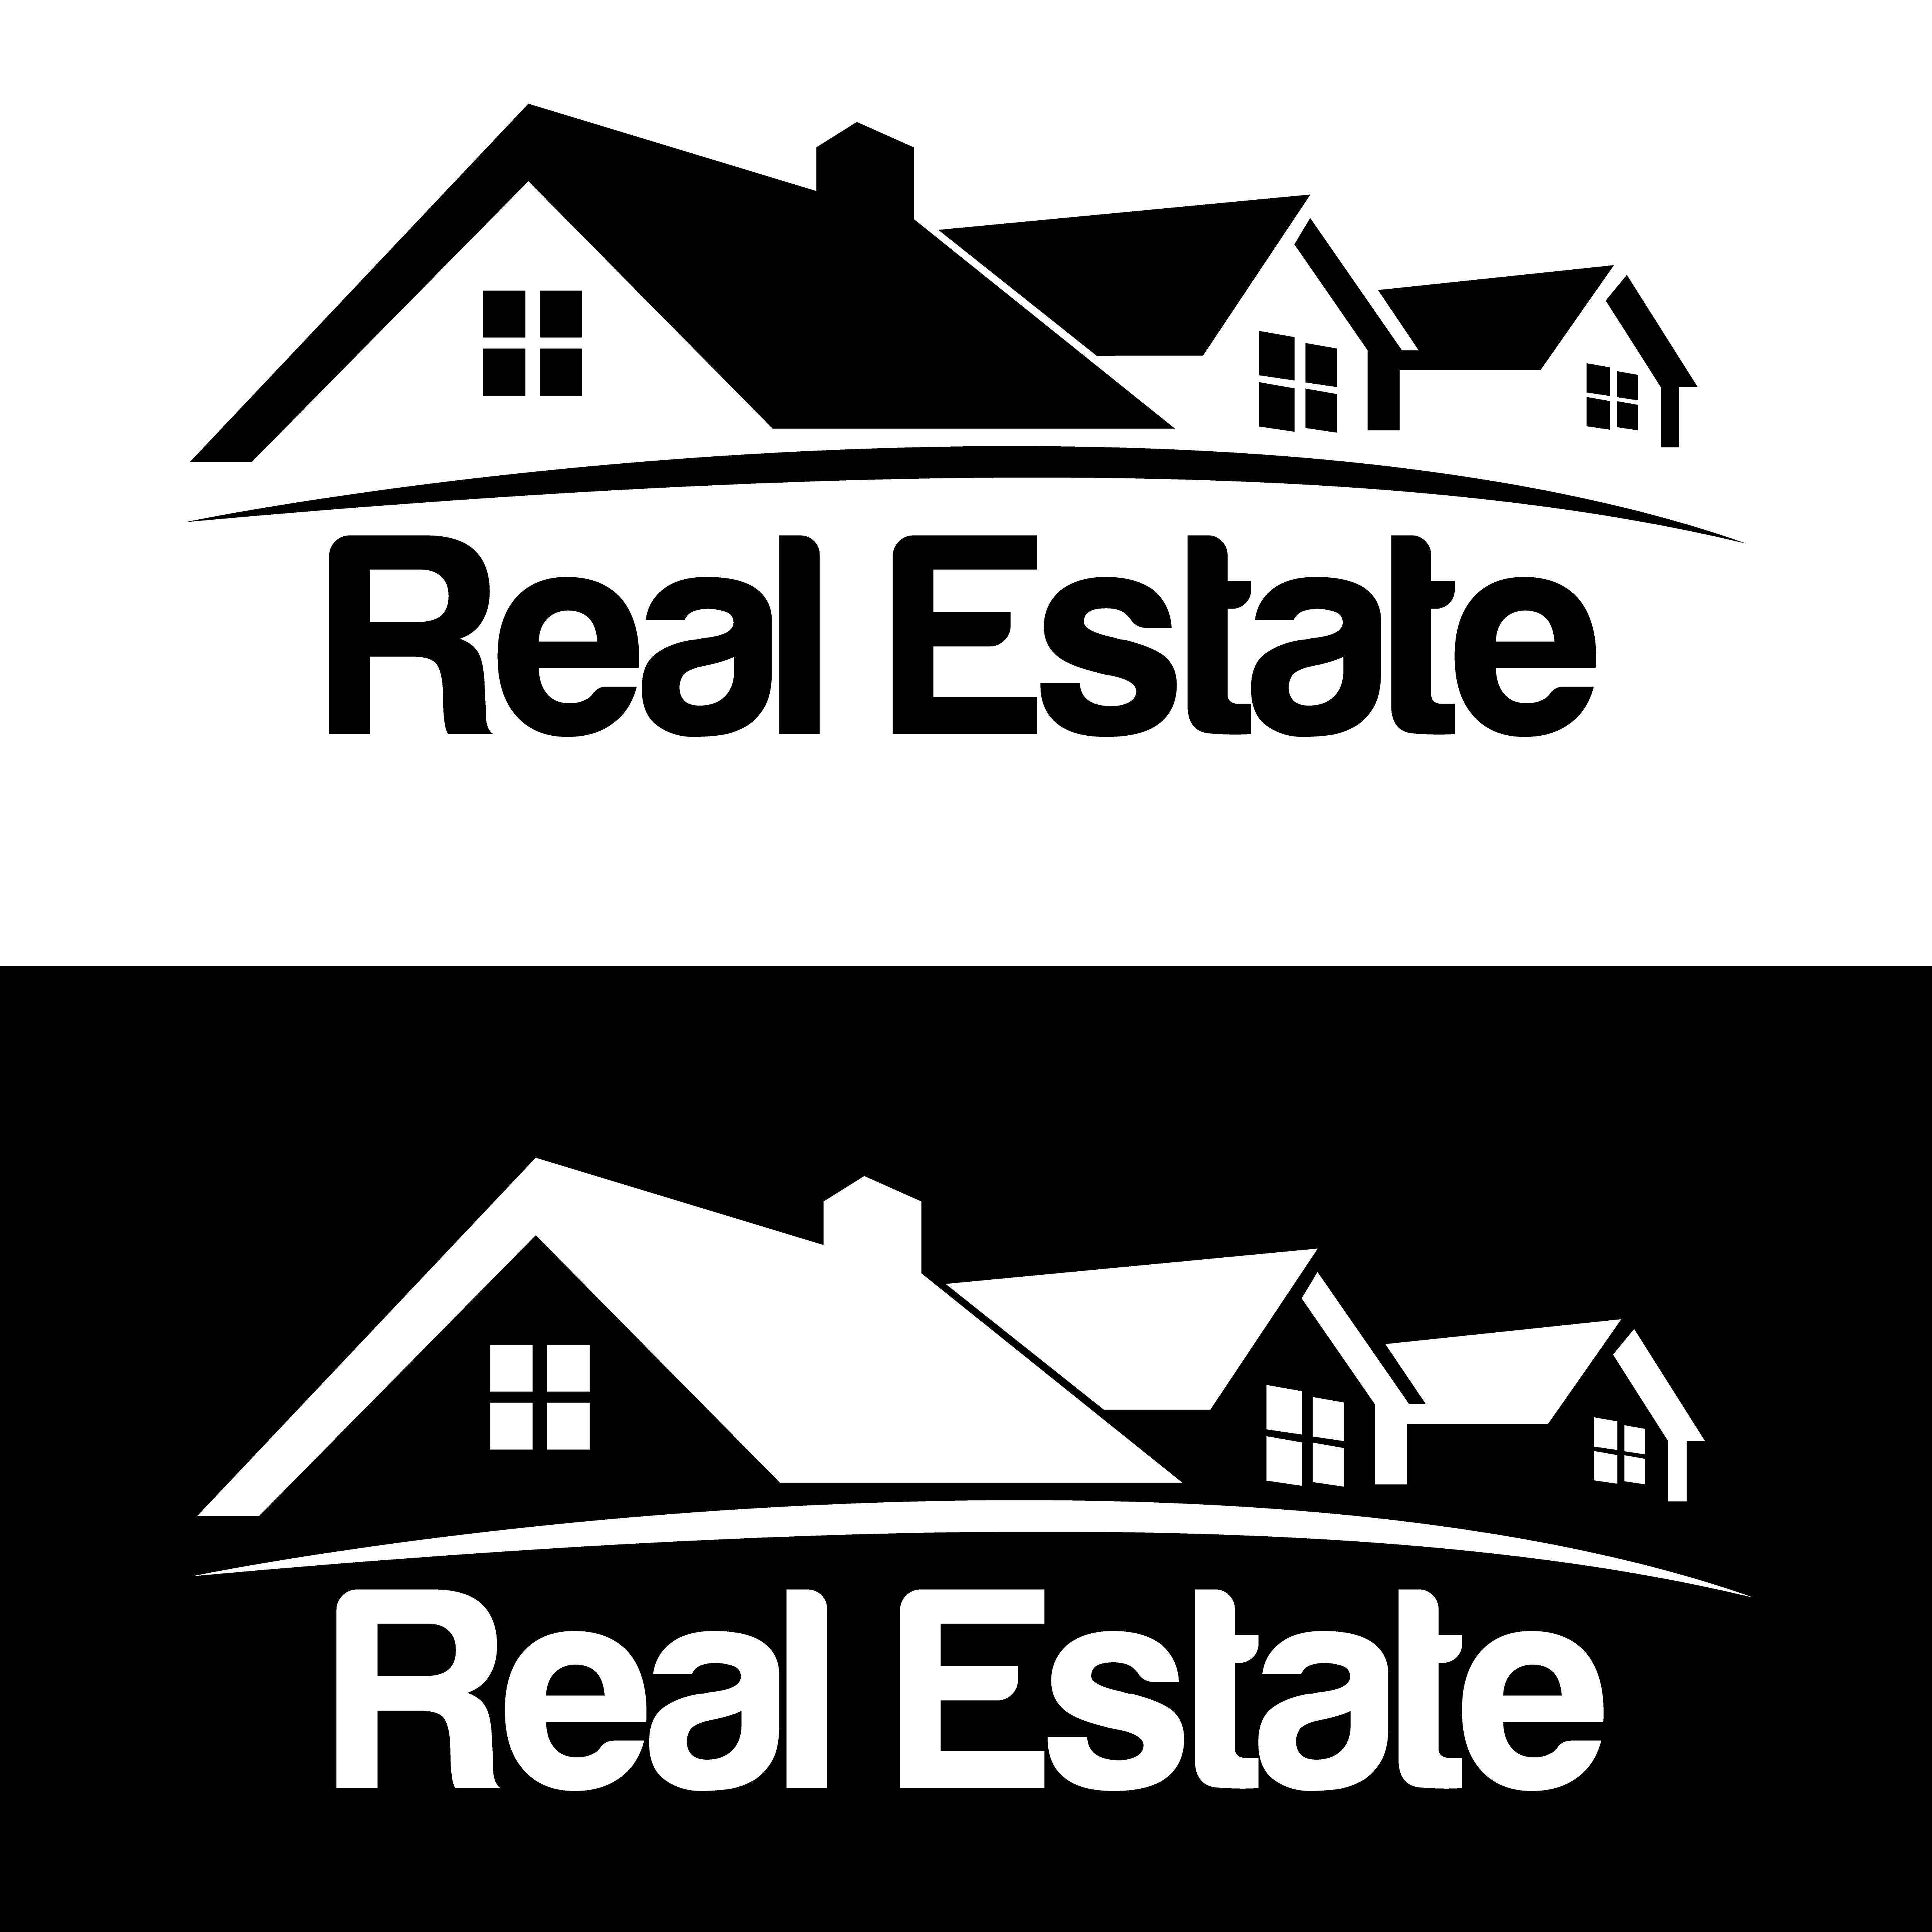 los angeles Real Estate logo design